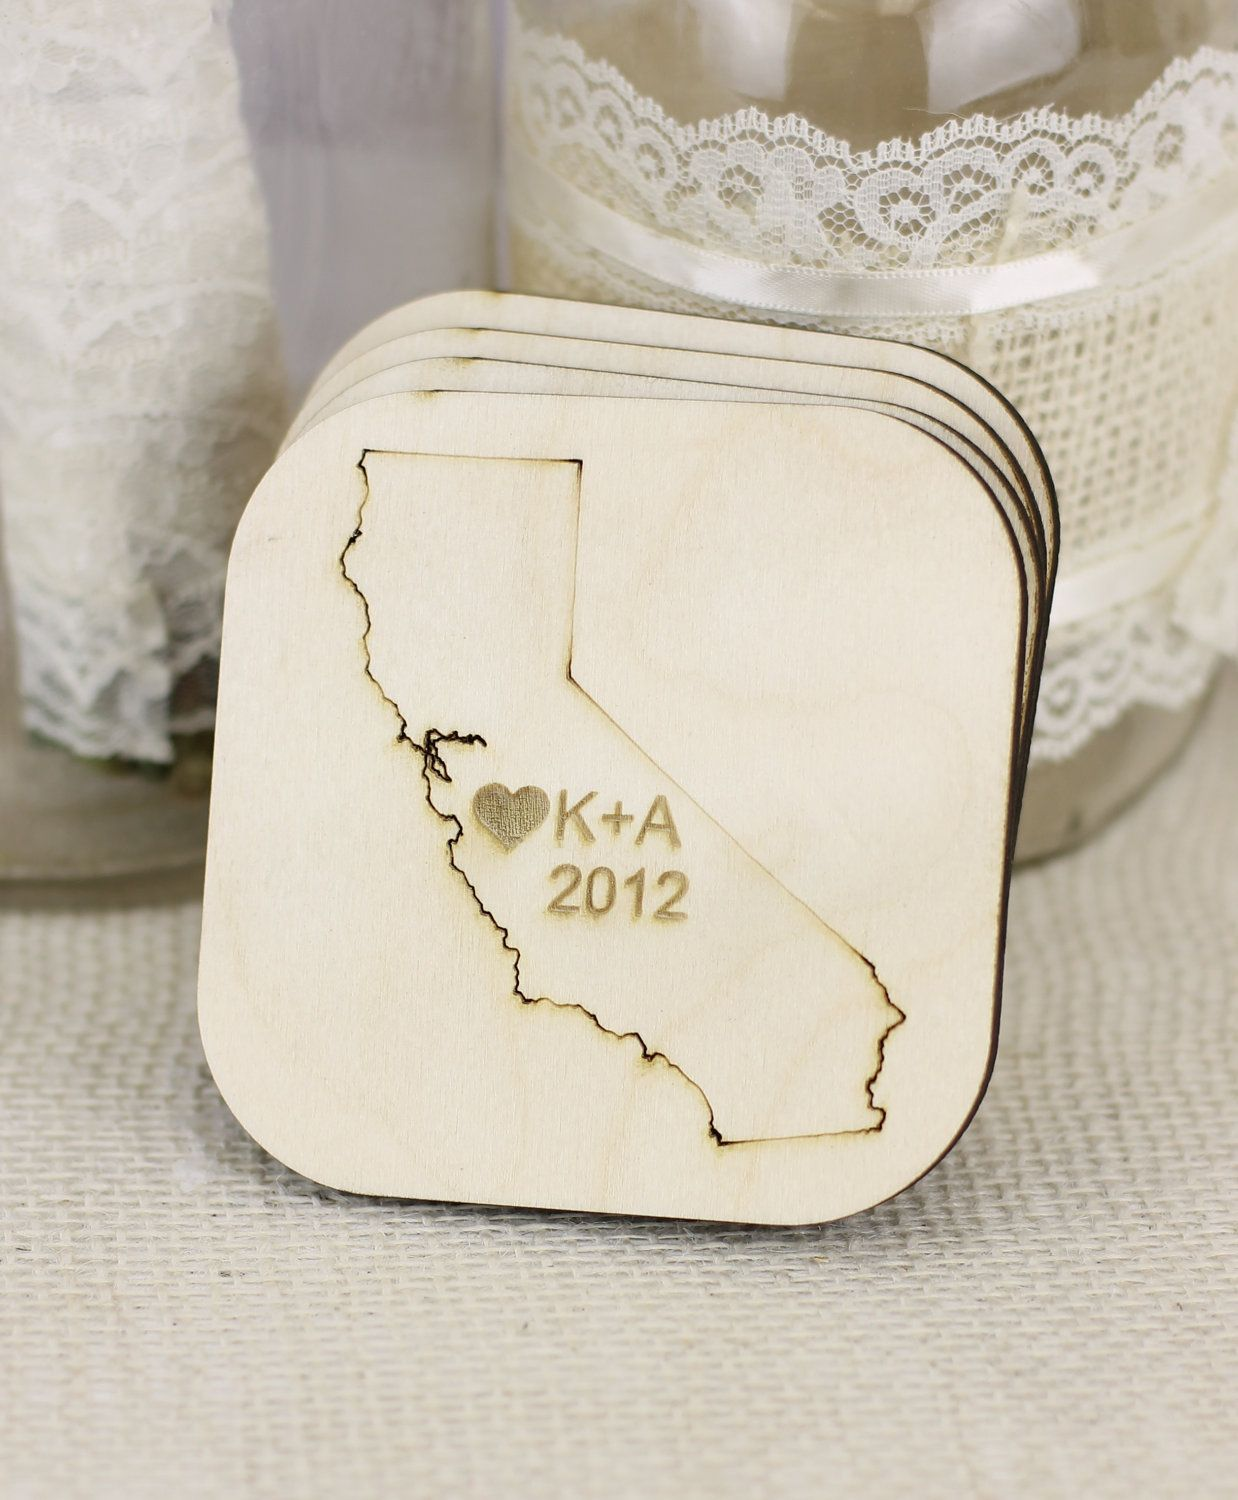 Personalized Rustic Wedding Favors State Coasters | Wedding ...